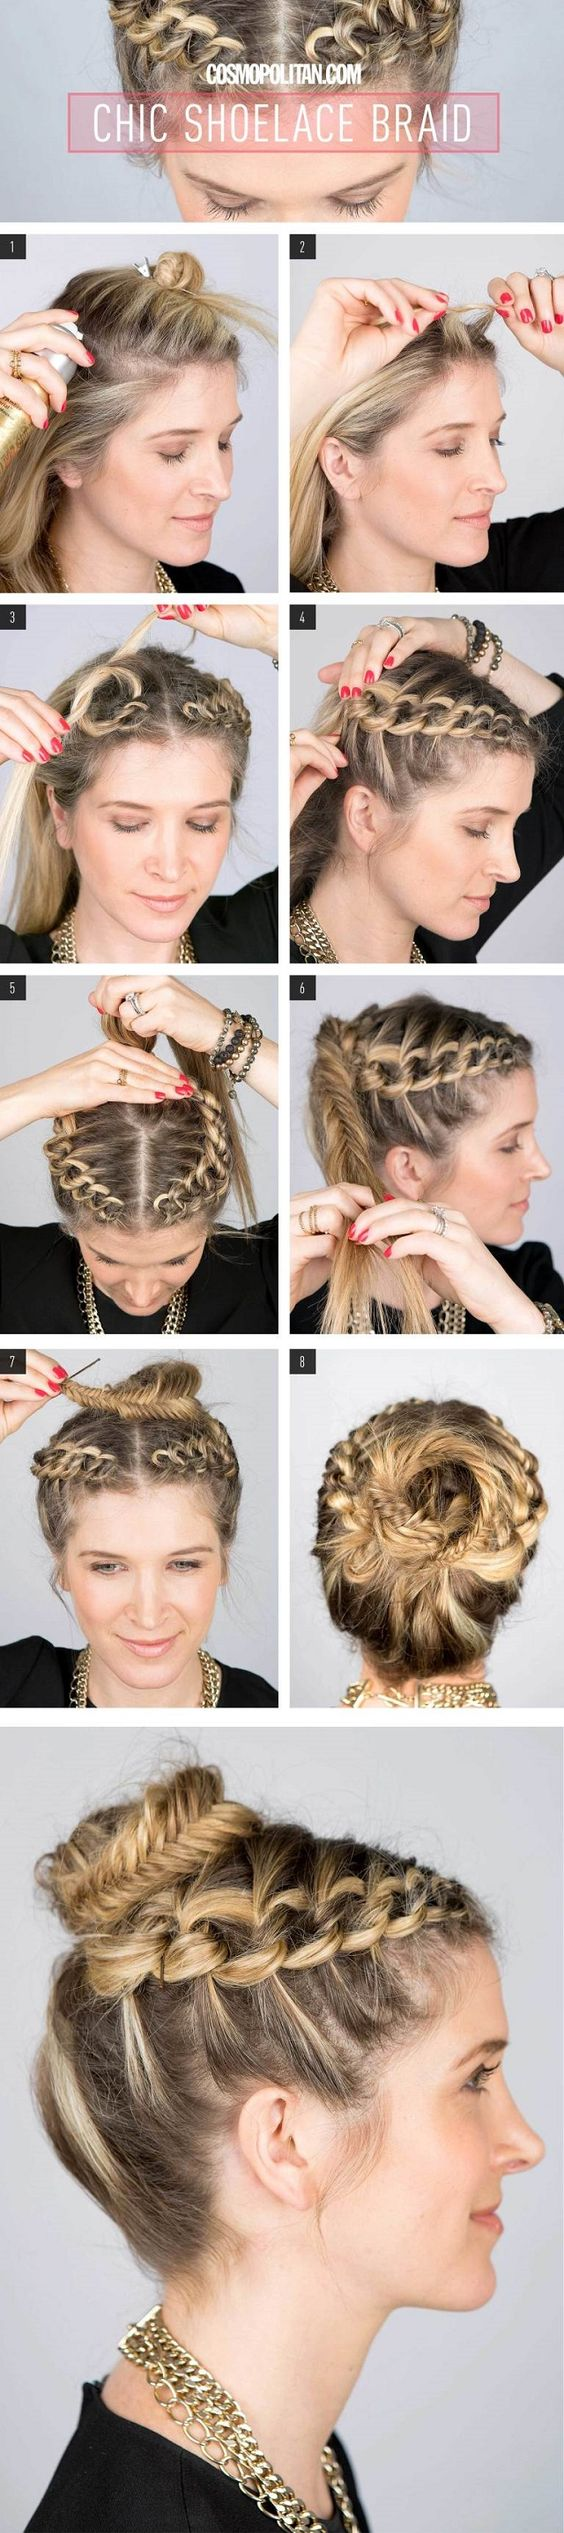 Remarkable 19 Fabulous Braided Updo Hairstyles With Tutorials Shoelace Short Hairstyles For Black Women Fulllsitofus